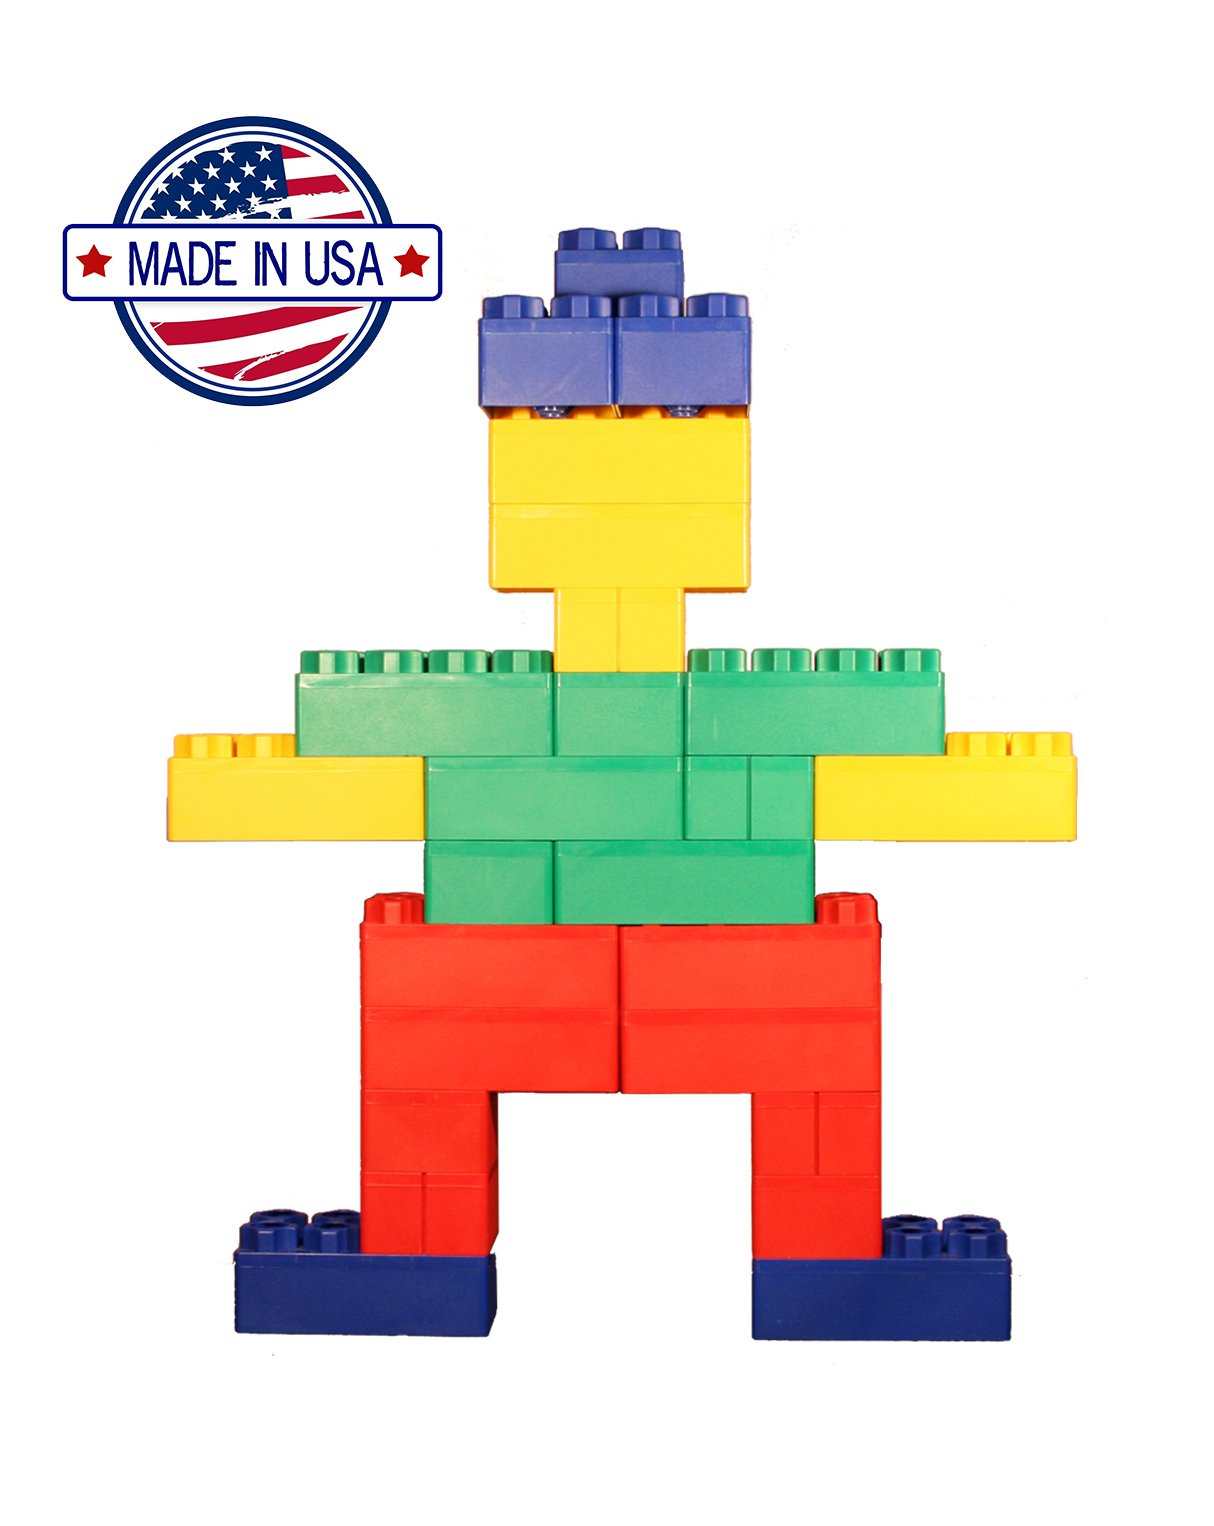 96pc Jumbo Blocks - Standard Set (Made in the USA) by Kids Adventure (Image #2)